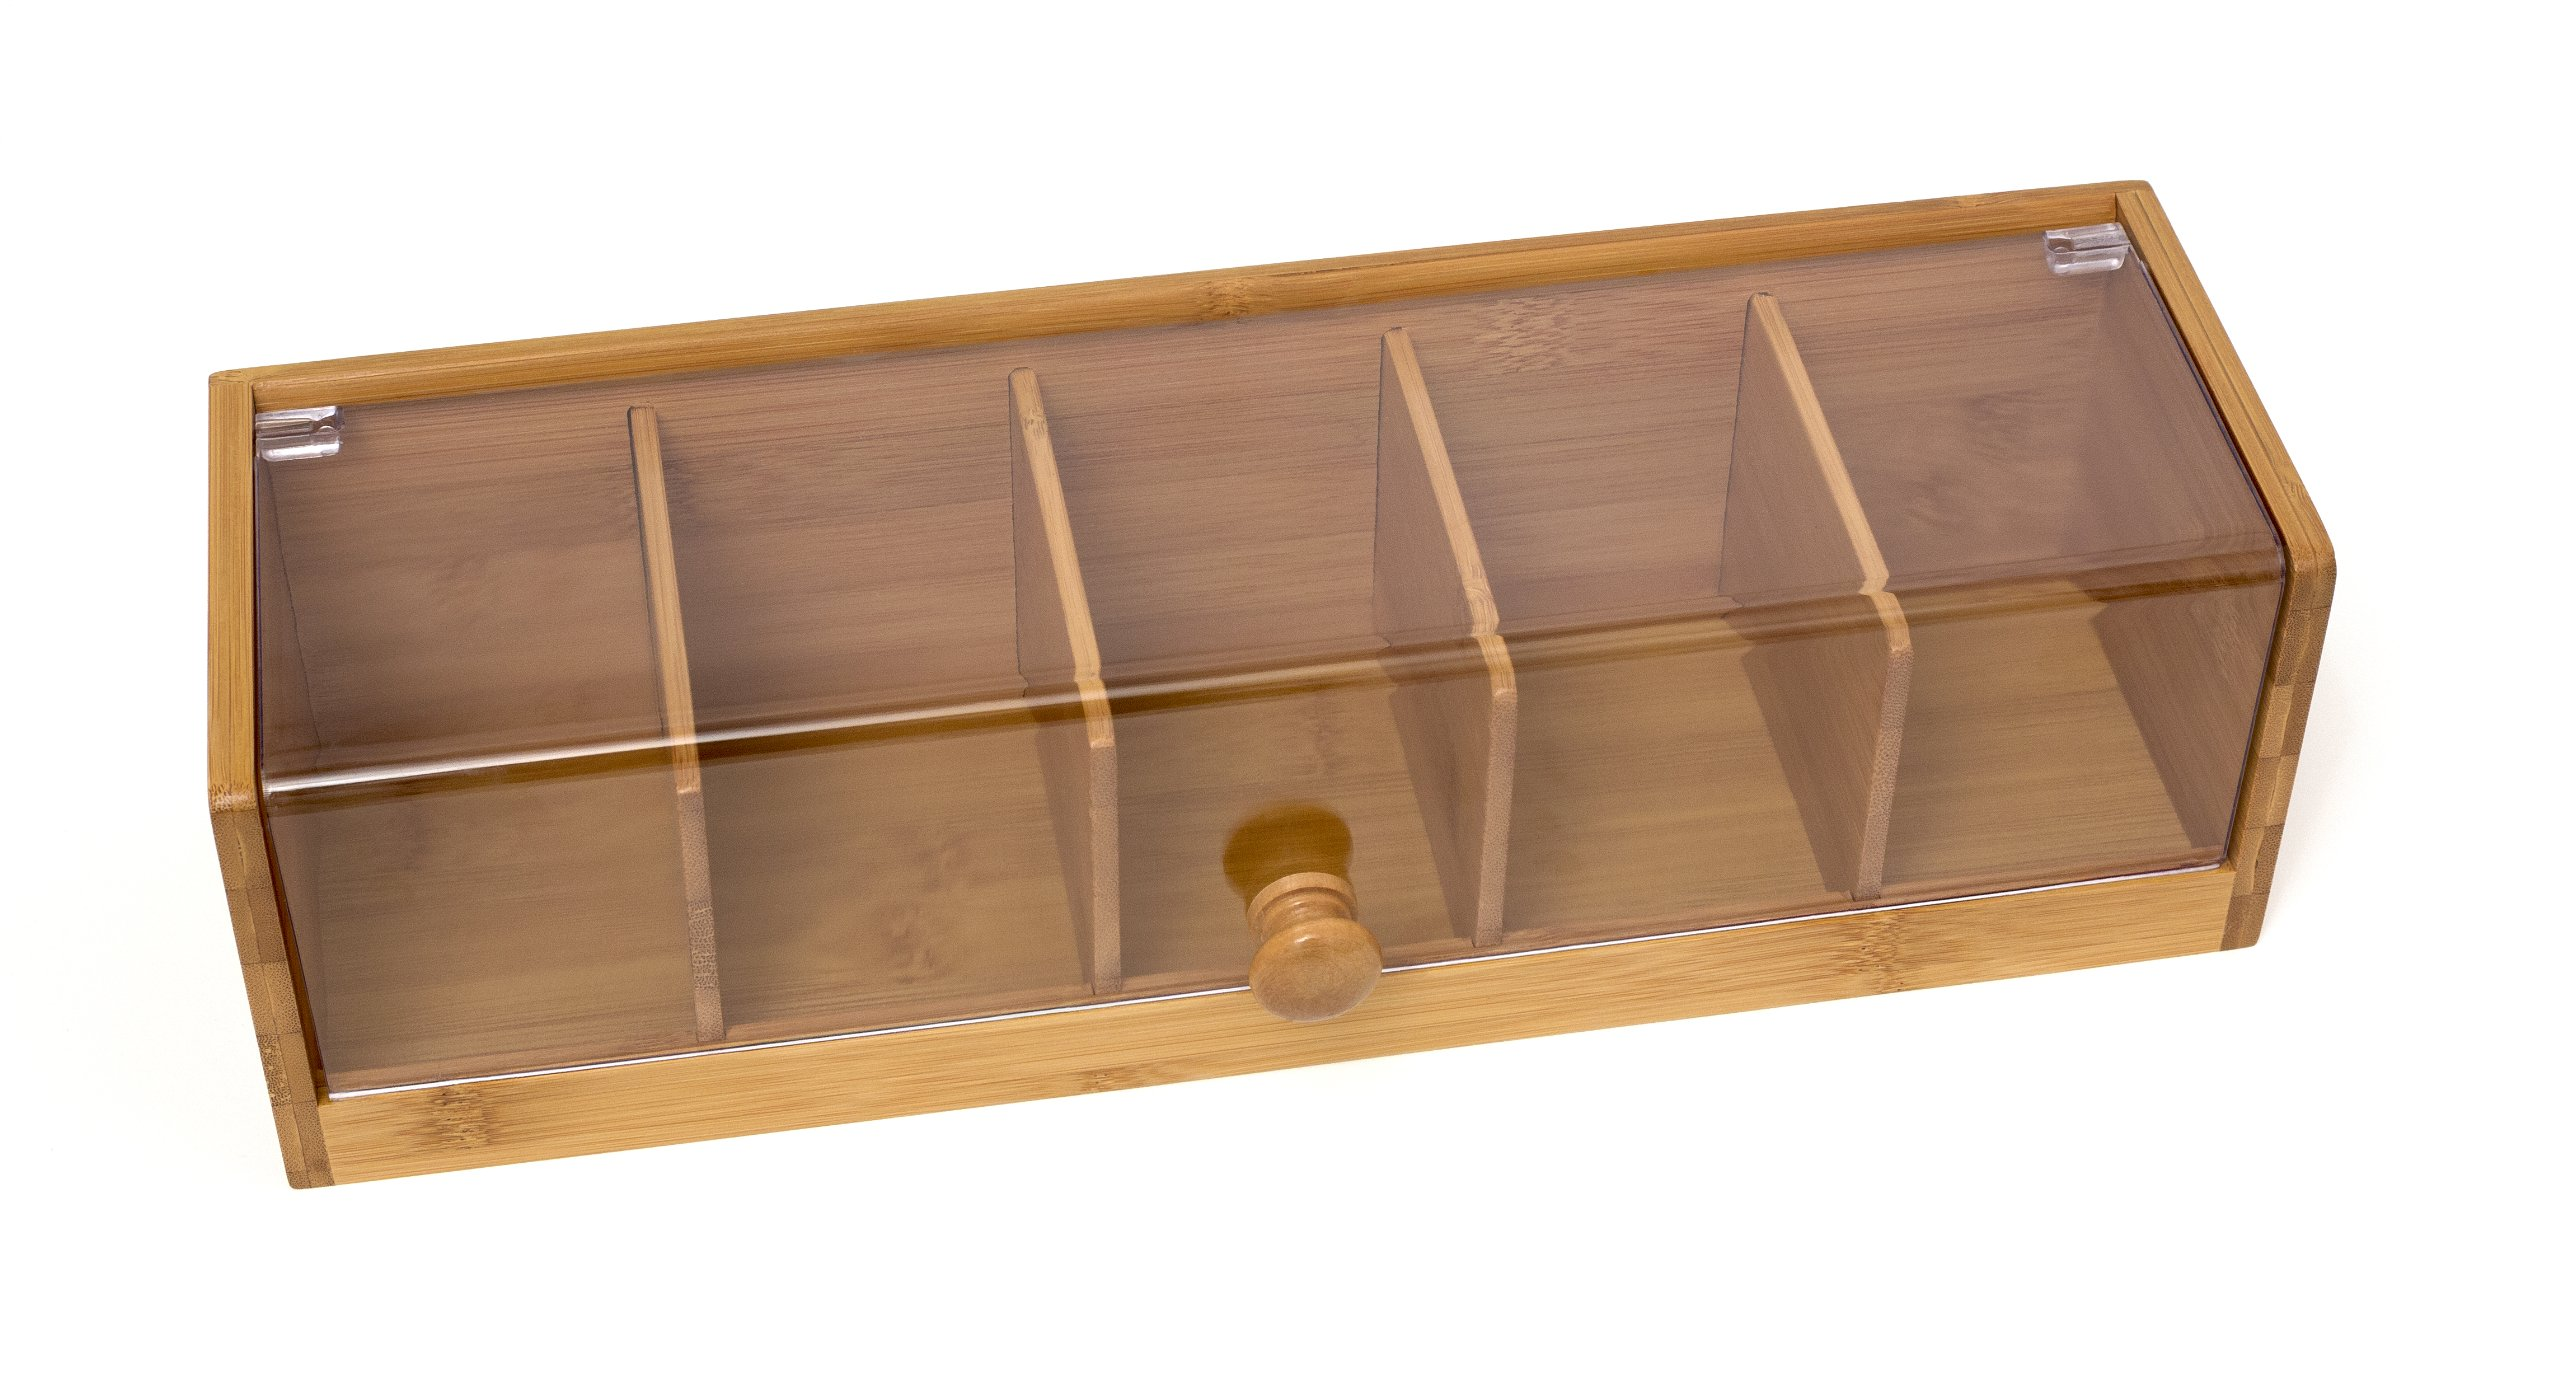 Lipper International 8187 Bamboo Wood and Acrylic Tea Box with 5 Sections, 14'' x 5'' x 3-3/4''